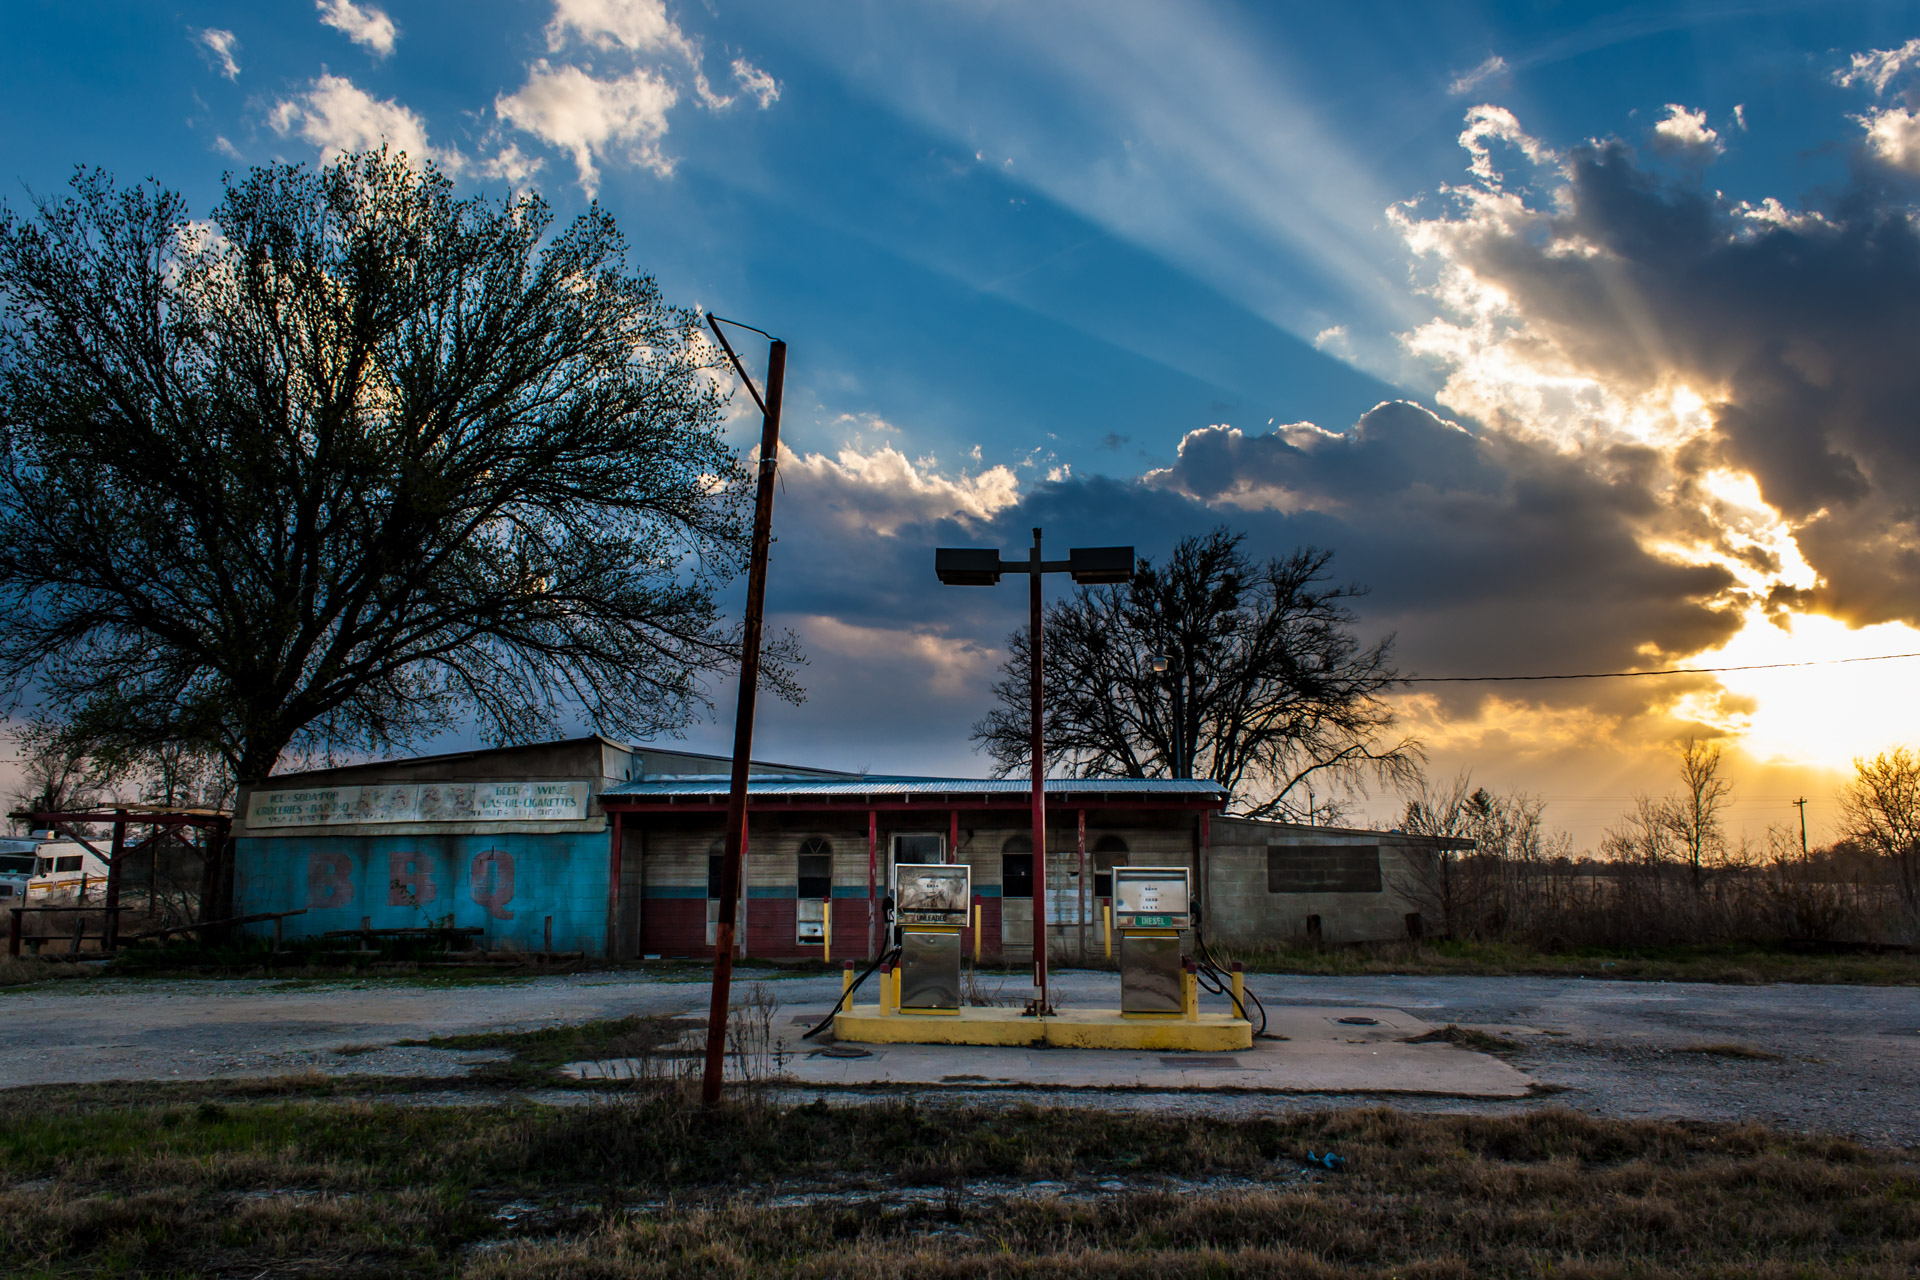 Elgin, Texas - BBQ And Gas Station (front far sunset)